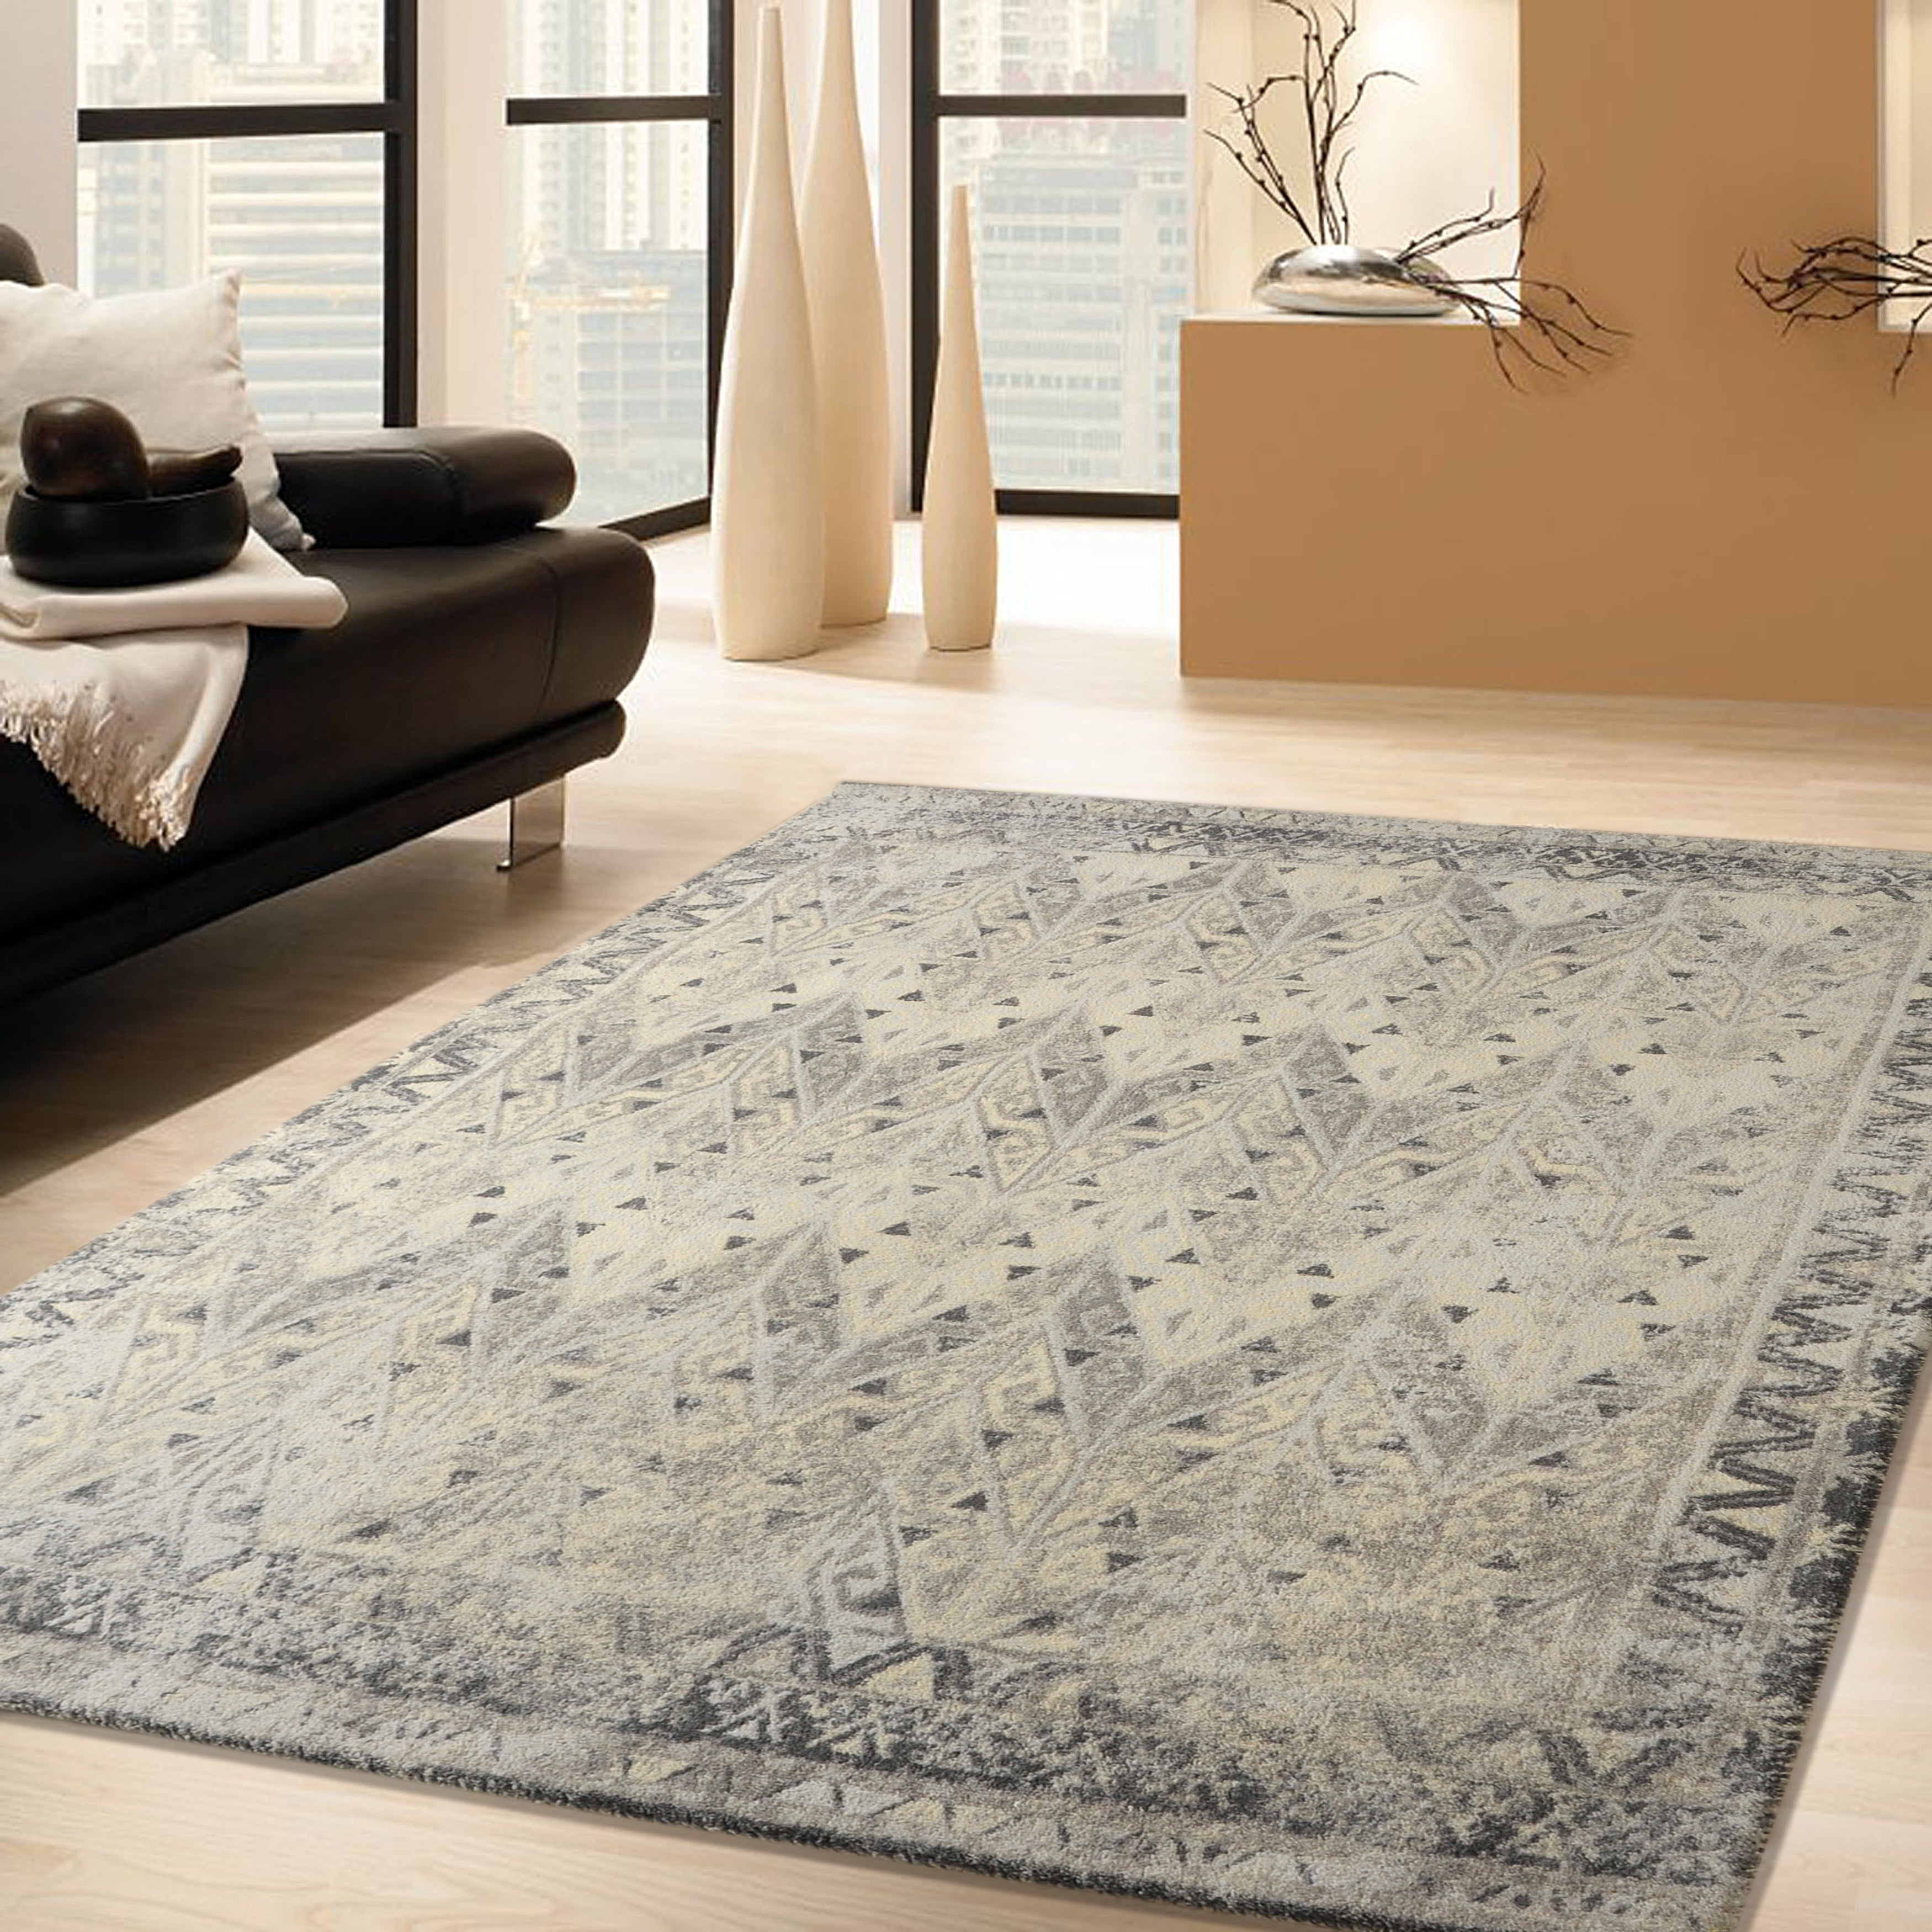 RugSmith Grey Prime Distressed Vintage Inspired Area Rug - 3 x 5 (3 x 5 - Grey)